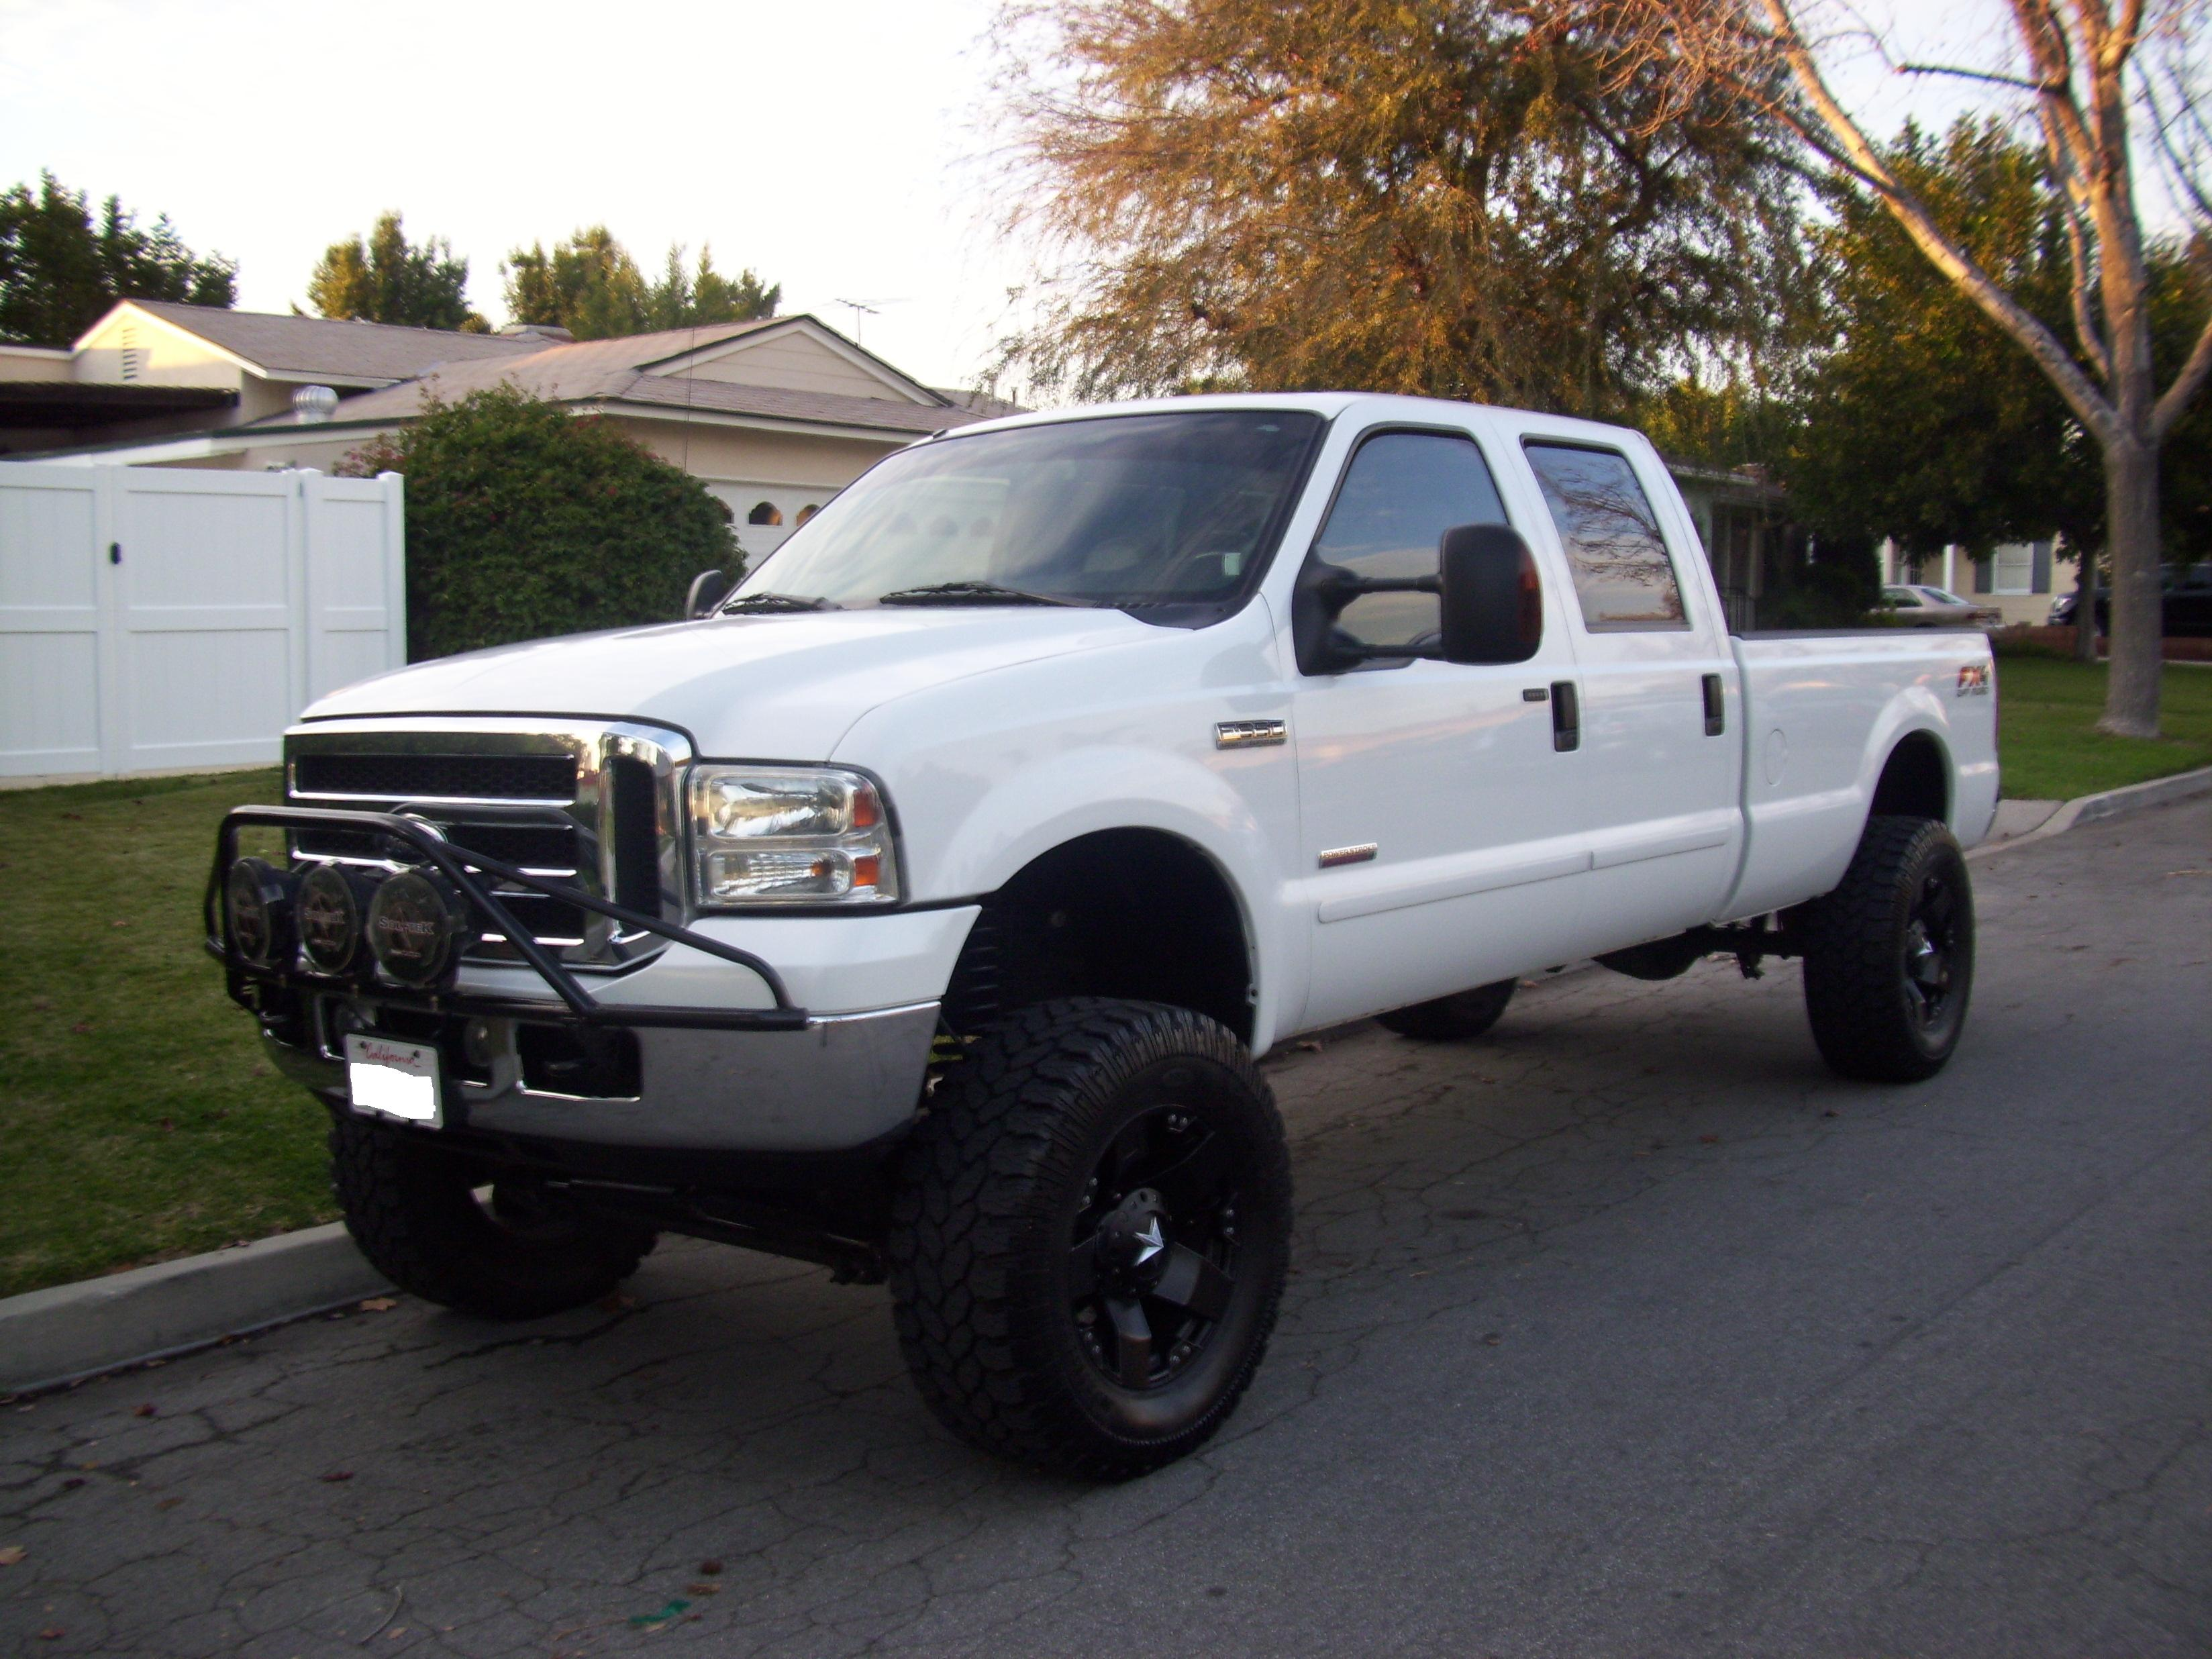 2006 ford f350 crew cab fx4 lb white lariat lifted 6 0. Black Bedroom Furniture Sets. Home Design Ideas